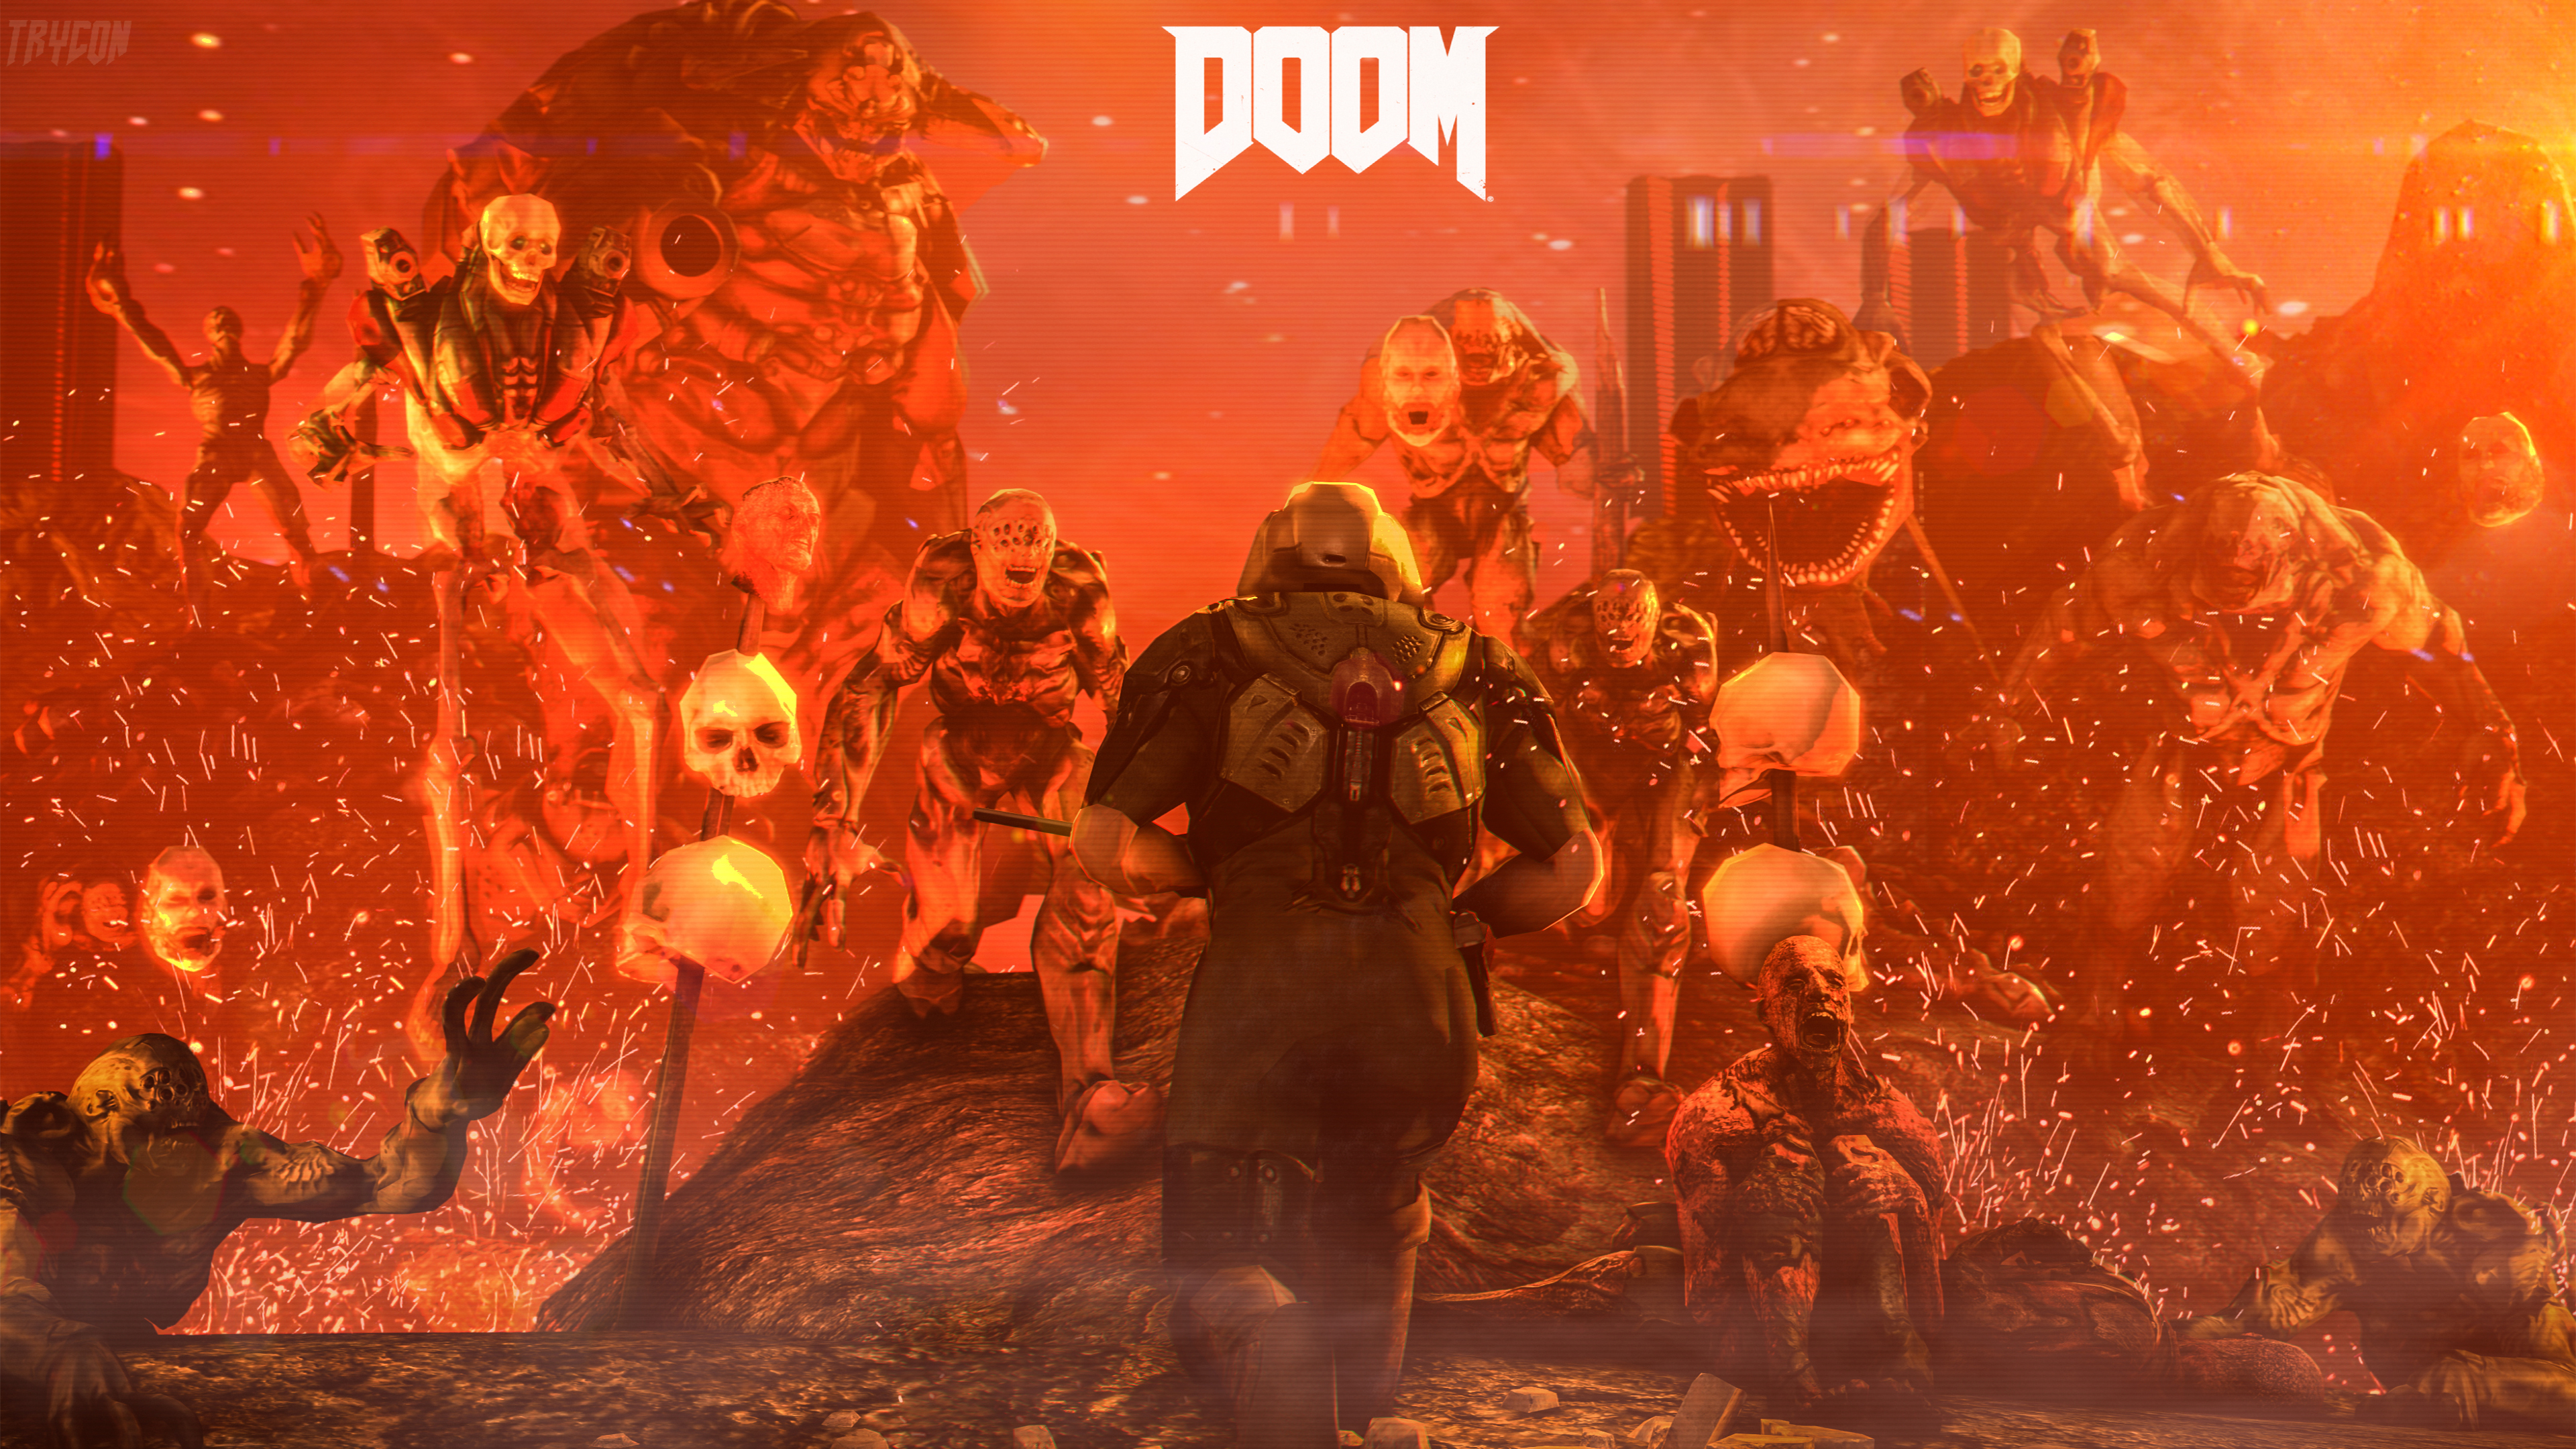 doom 4 digital art 1535967814 - Doom 4 Digital Art - xbox games wallpapers, ps games wallpapers, pc games wallpapers, games wallpapers, doom wallpapers, doom 4 wallpapers